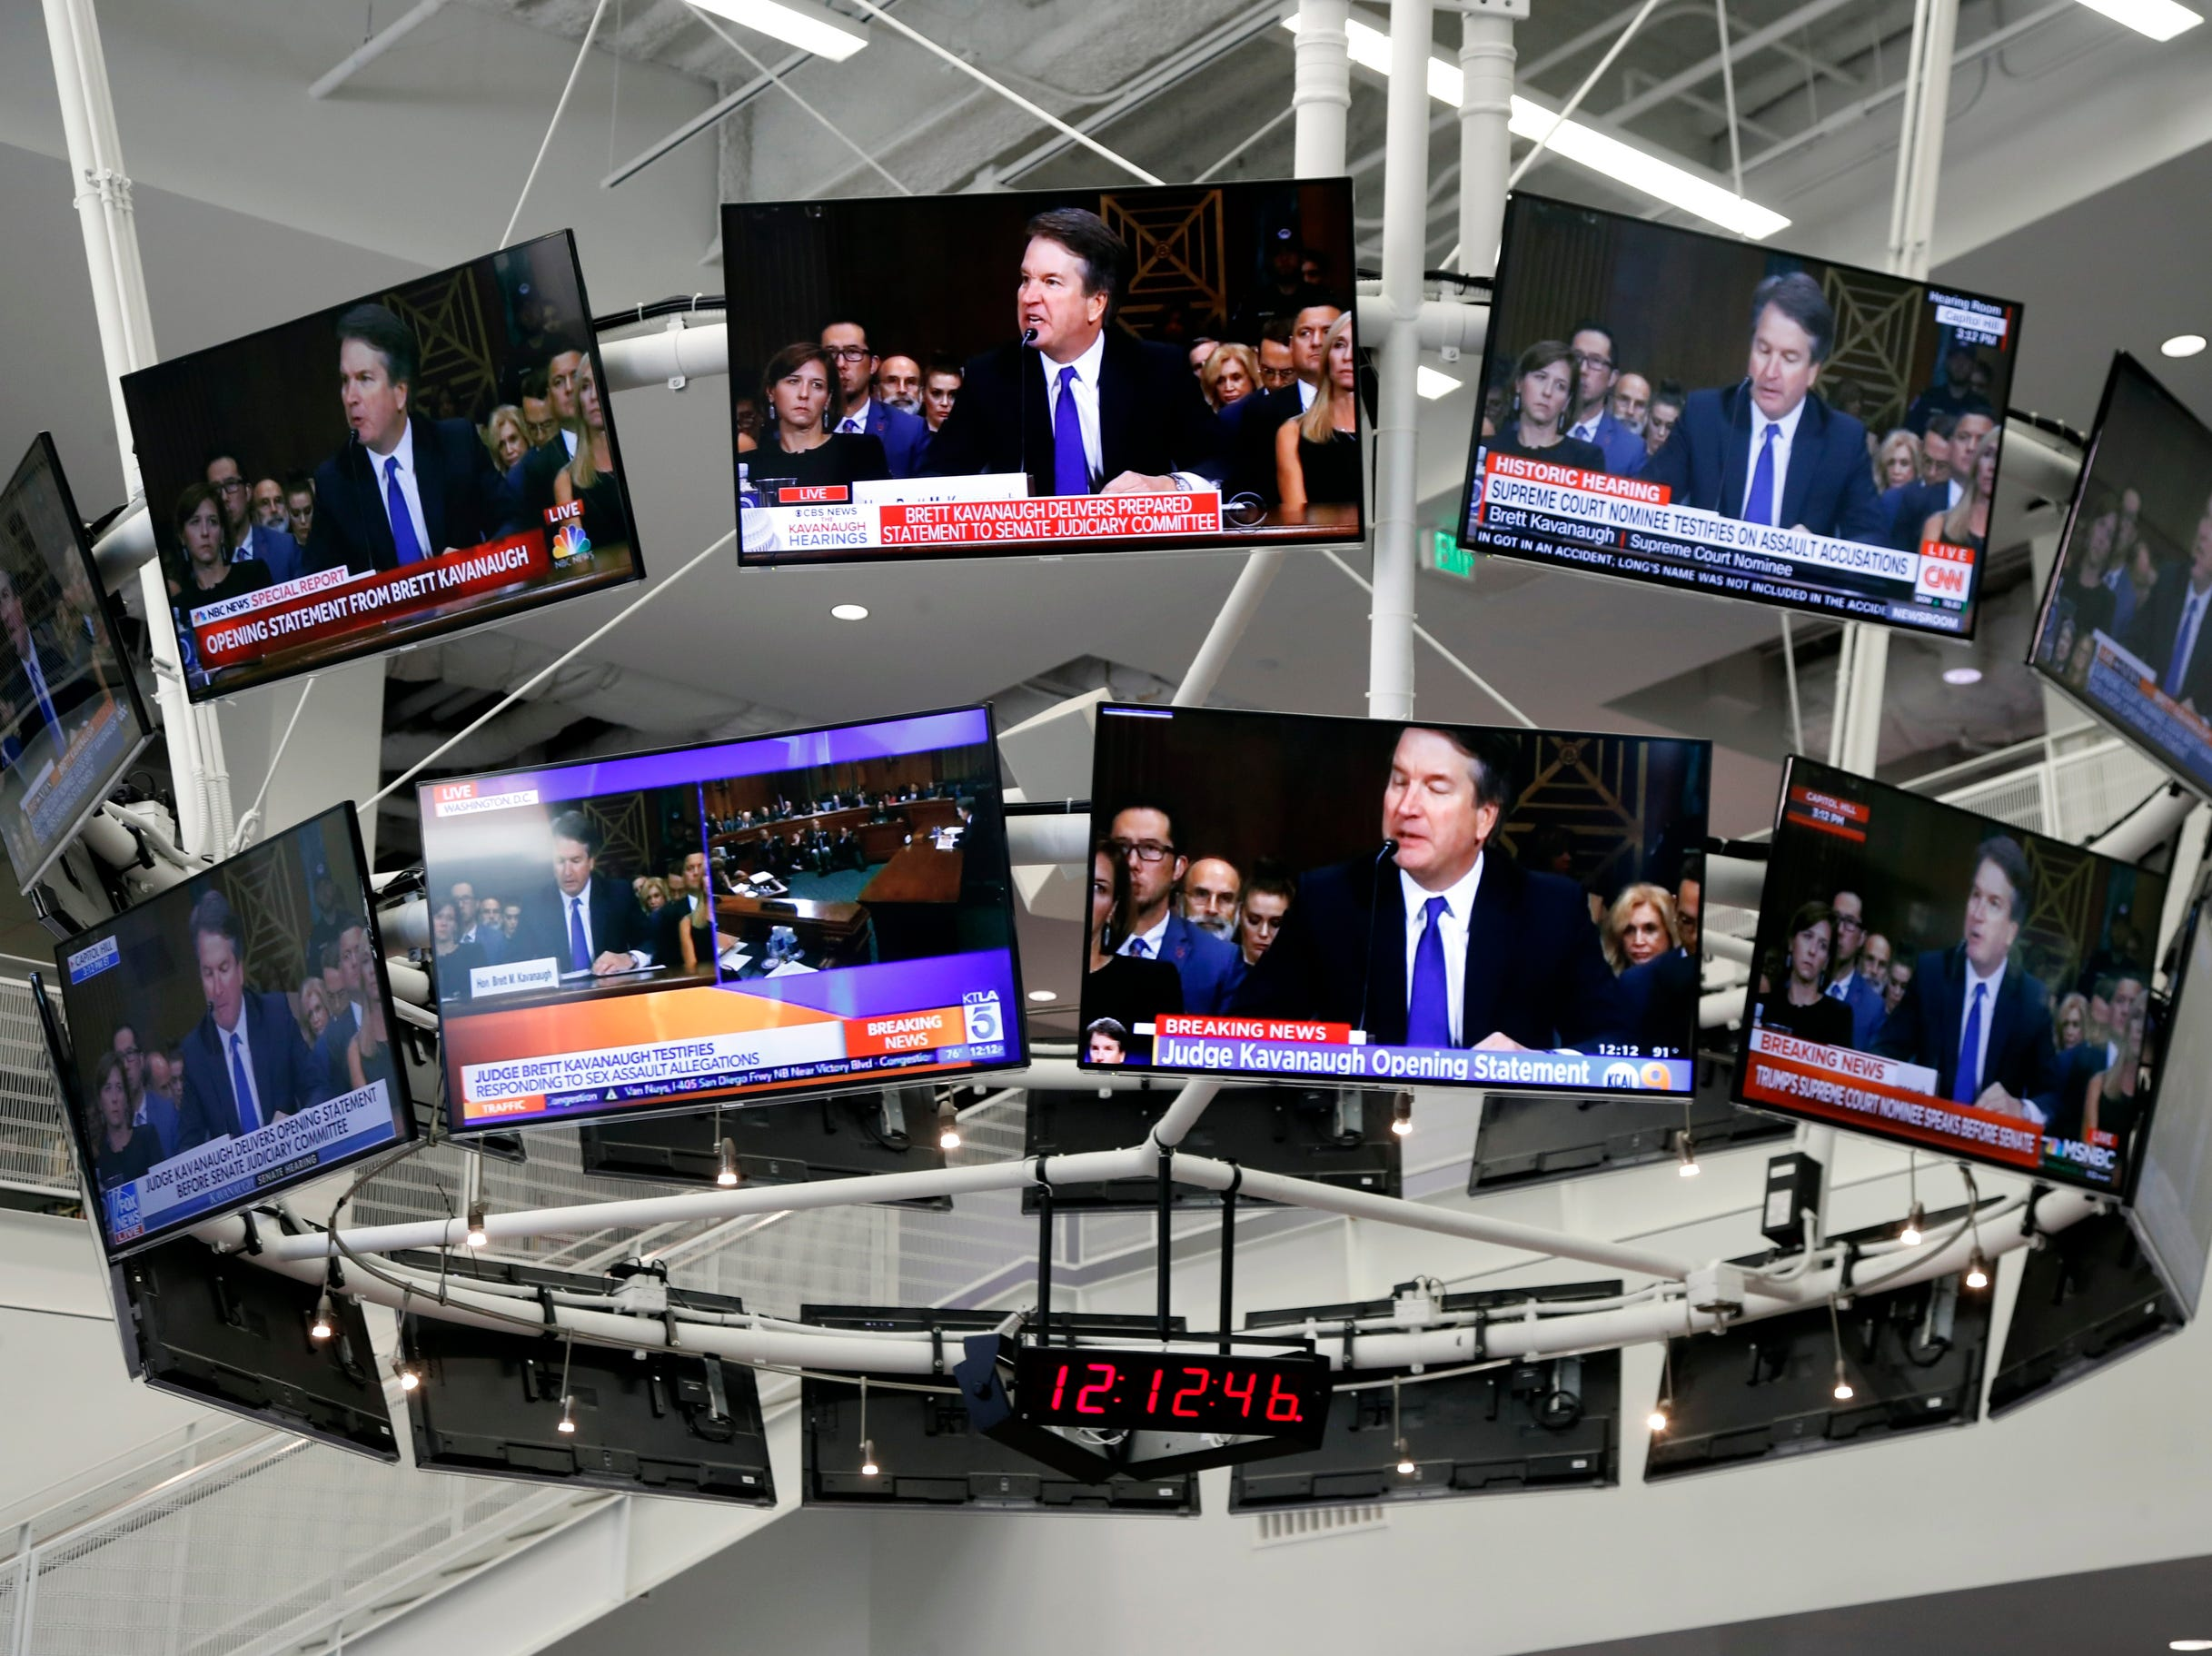 A bank of televisions show Brett Kavanaugh testifying at the Senate Judiciary Committee hearing on the nomination of Brett Kavanaugh to be an associate justice of the Supreme Court of the United States, at a the USC Annenberg School for Communication and Journalism.